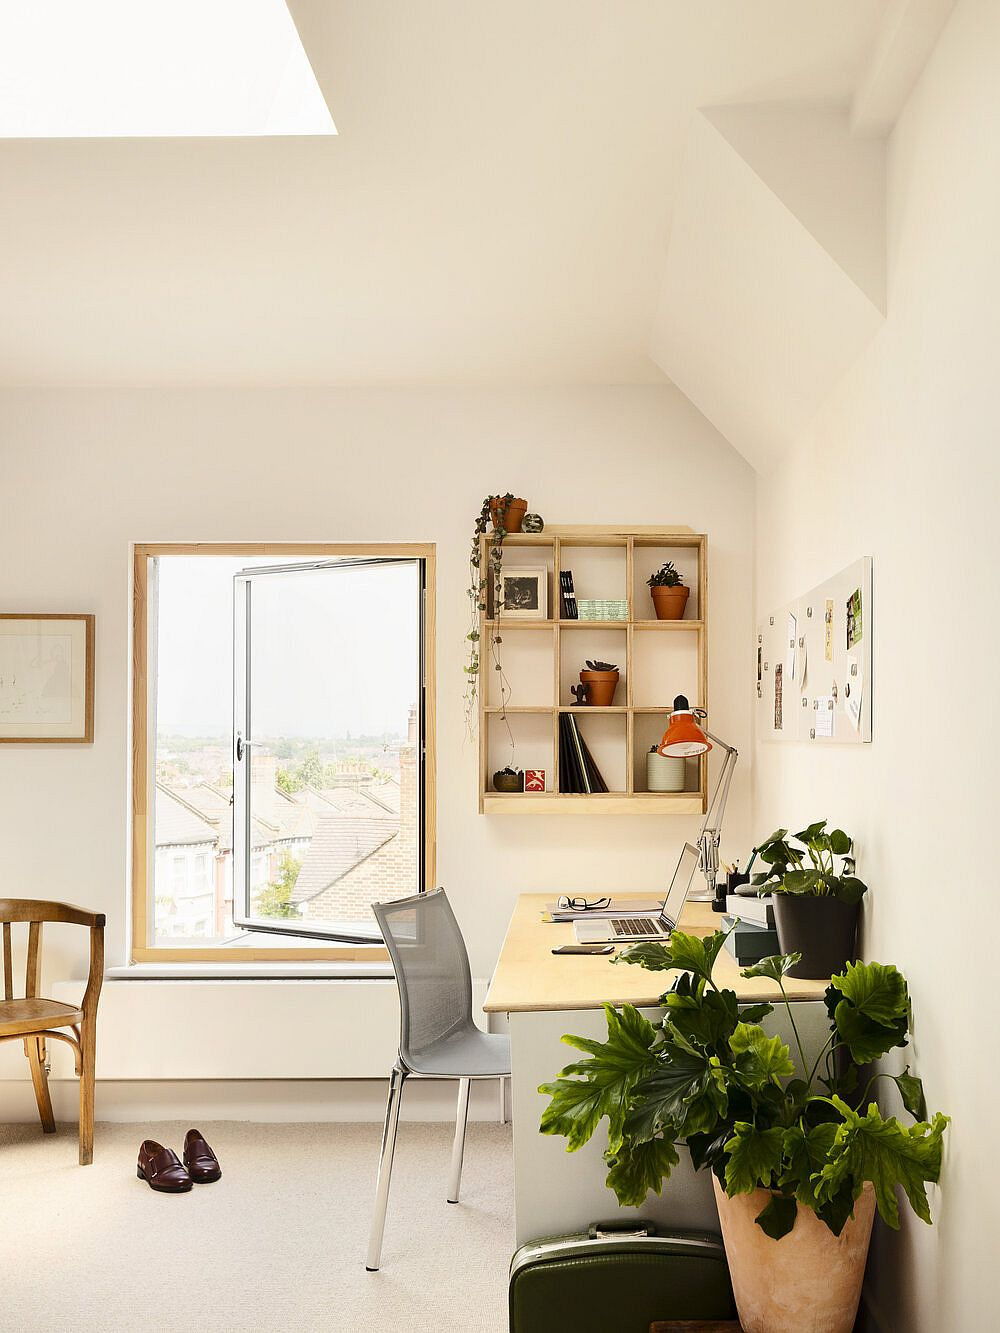 Skylight, windows and sconce lights illuminate the upper level home office